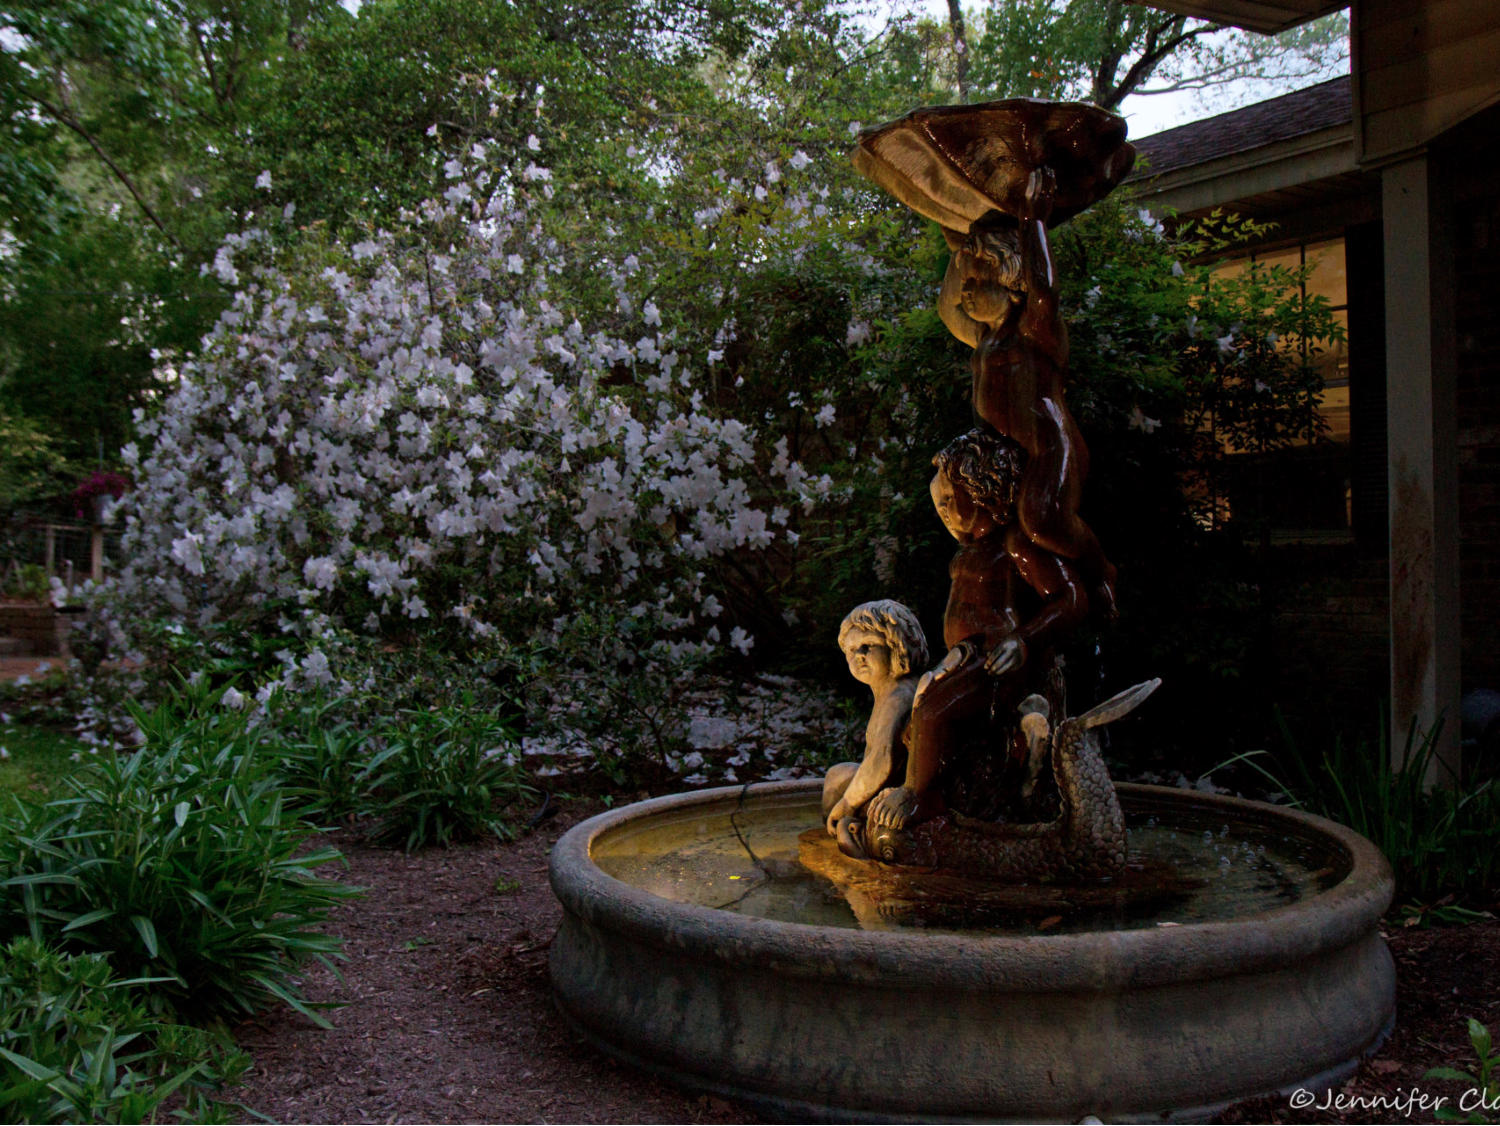 Water features can also add an alluring touch and soothing ambiance to your outdoor garden room.